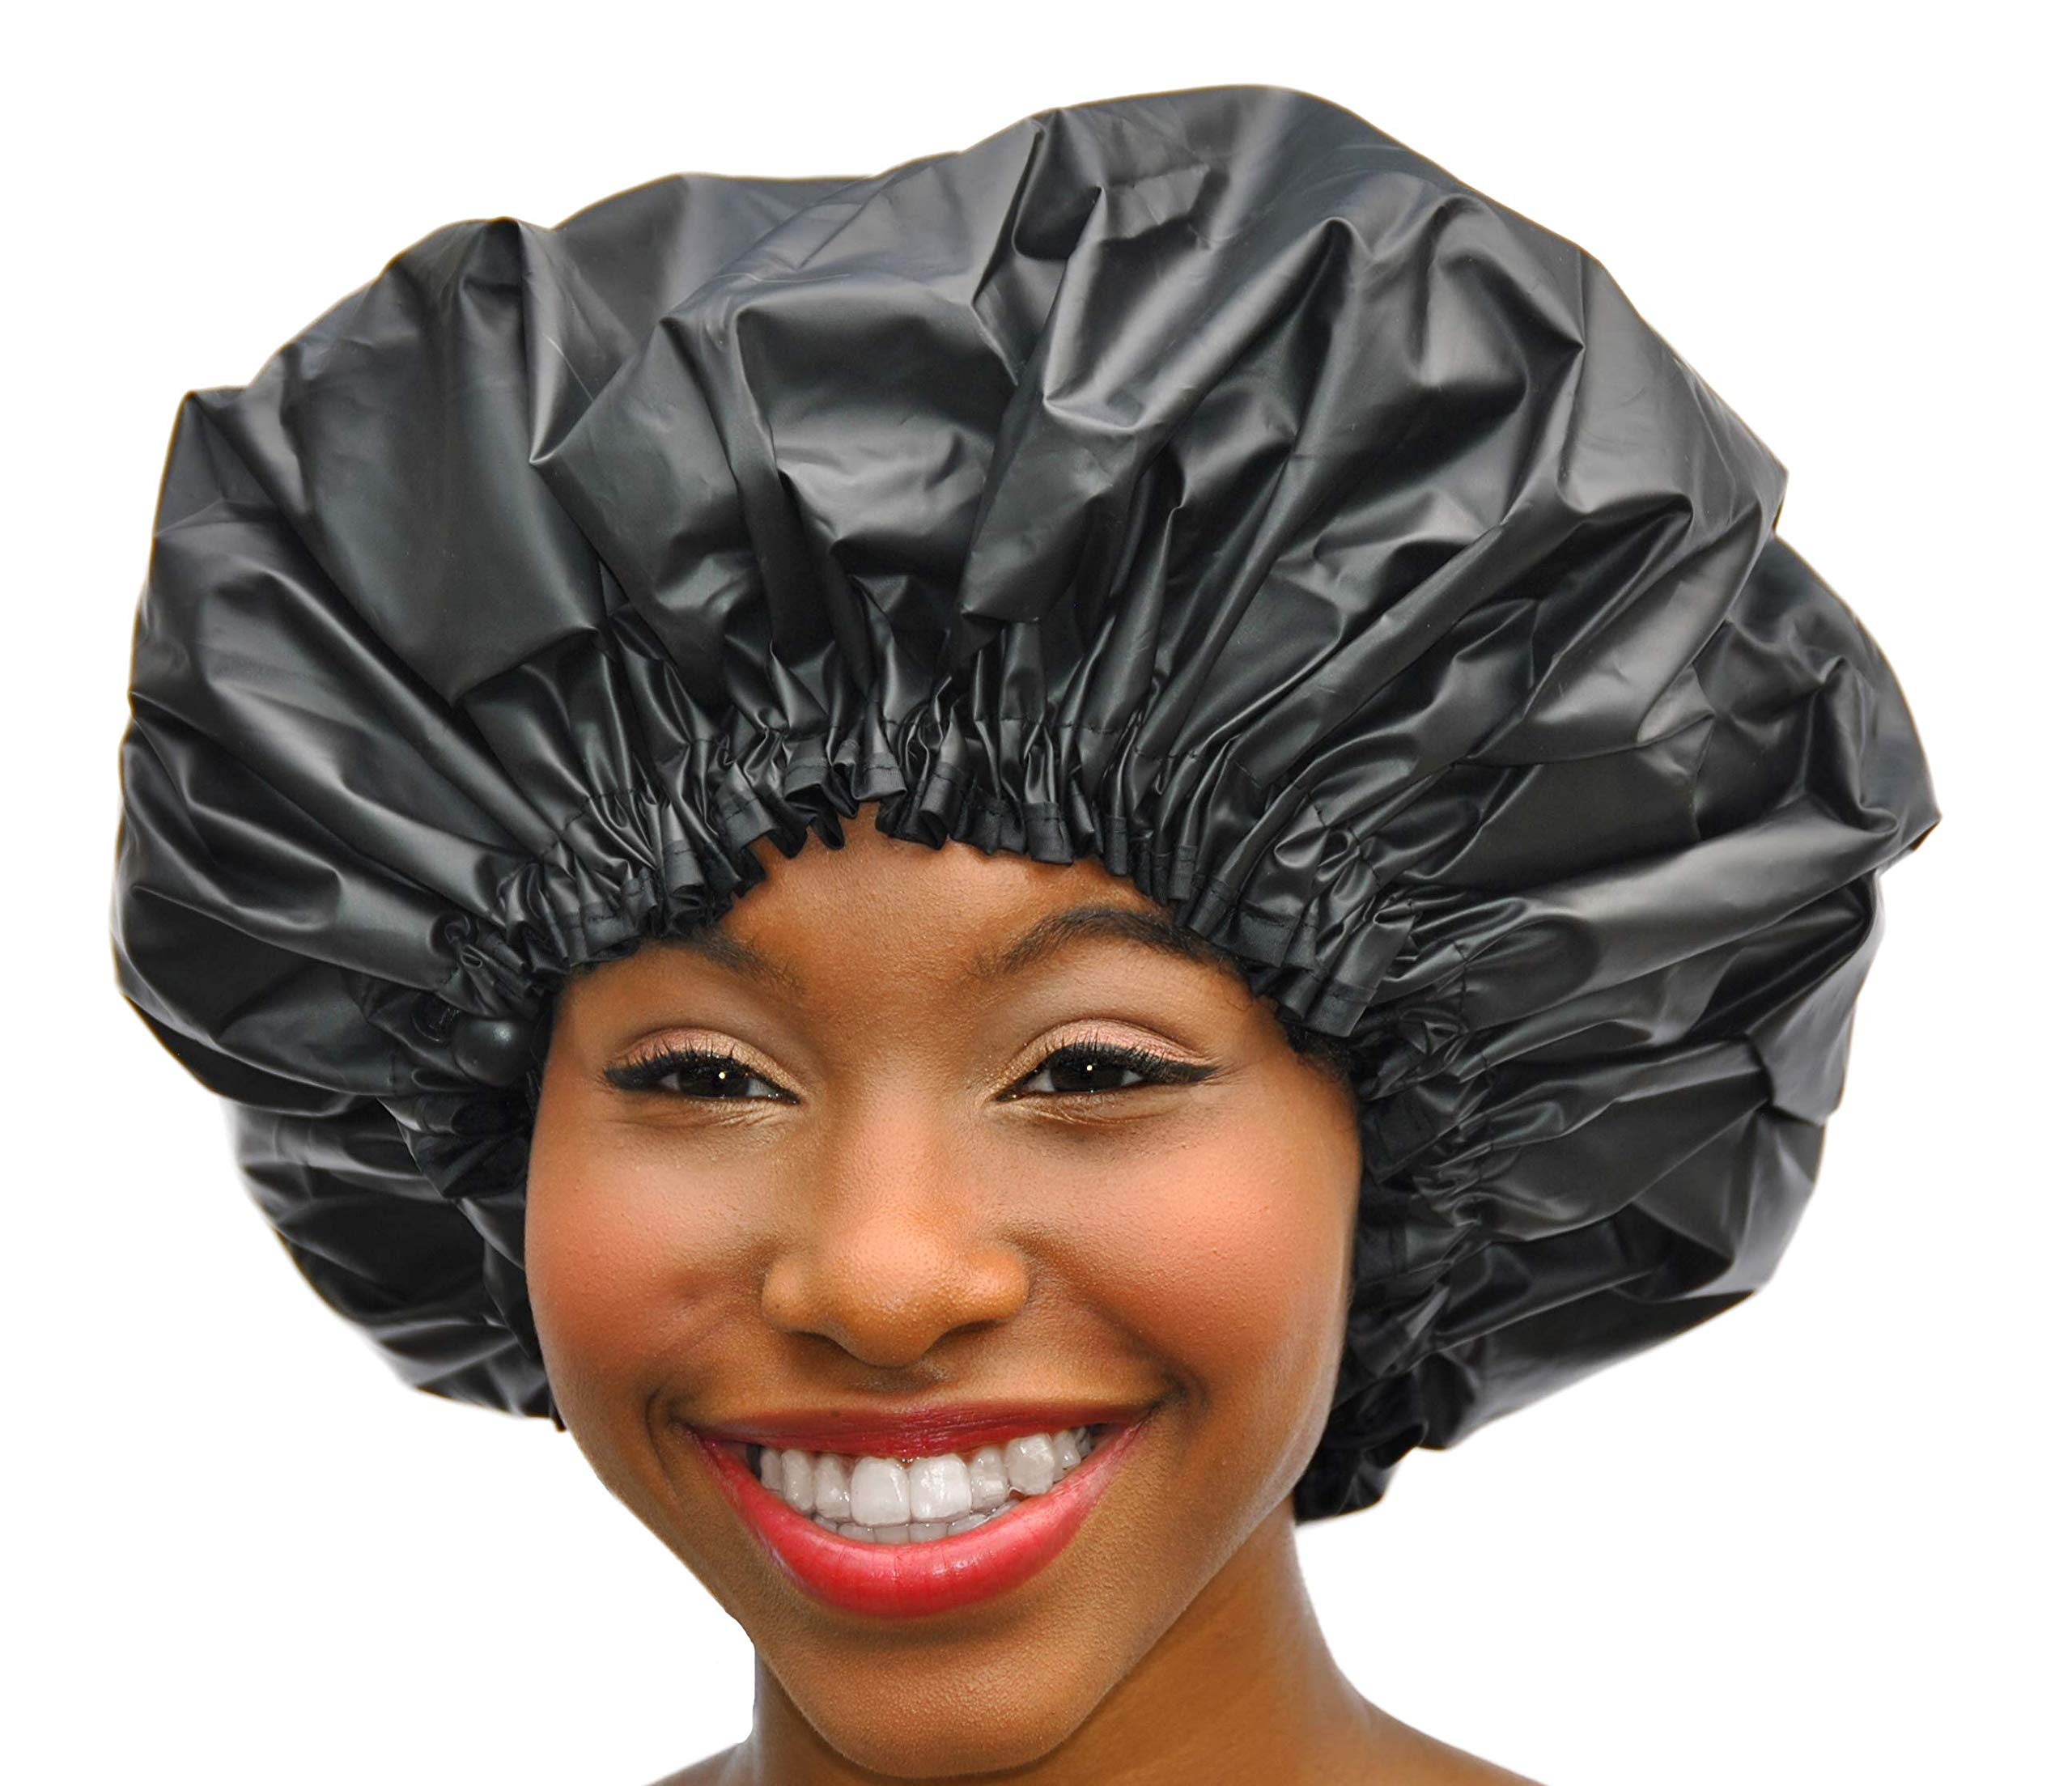 XL Shower Cap - Adjustable & WaterProof By Simply Elegant: The Satin Dream Jumbo ShowerCap X-Large and Extra Cute - The Best in Long Hair Products & Protection (Patent Pending)